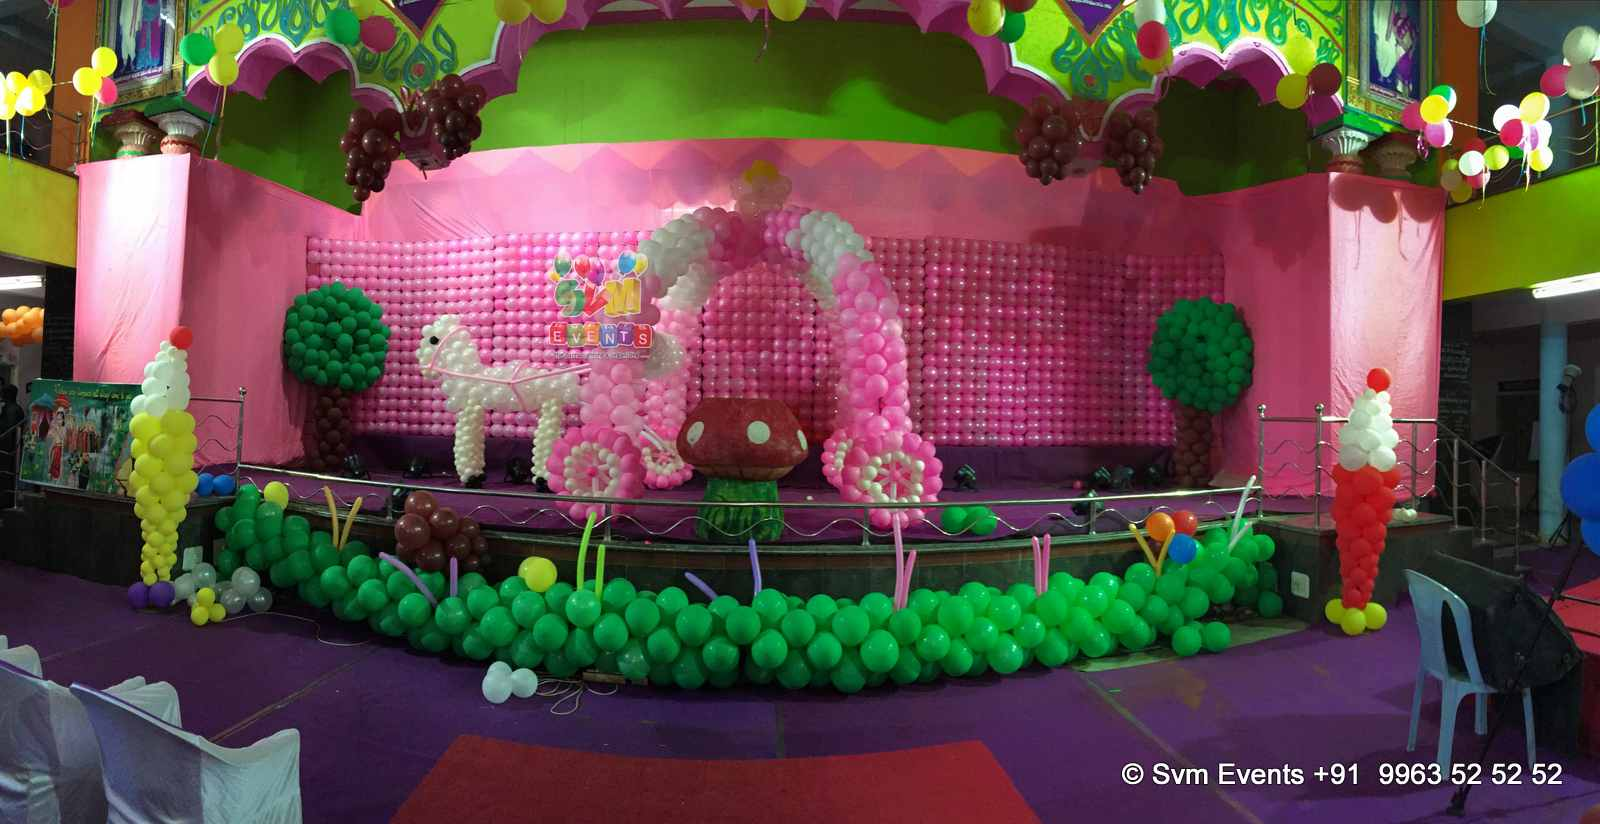 Svm events chariot theme for kids 1st birthday party and for Balloon decoration for first birthday